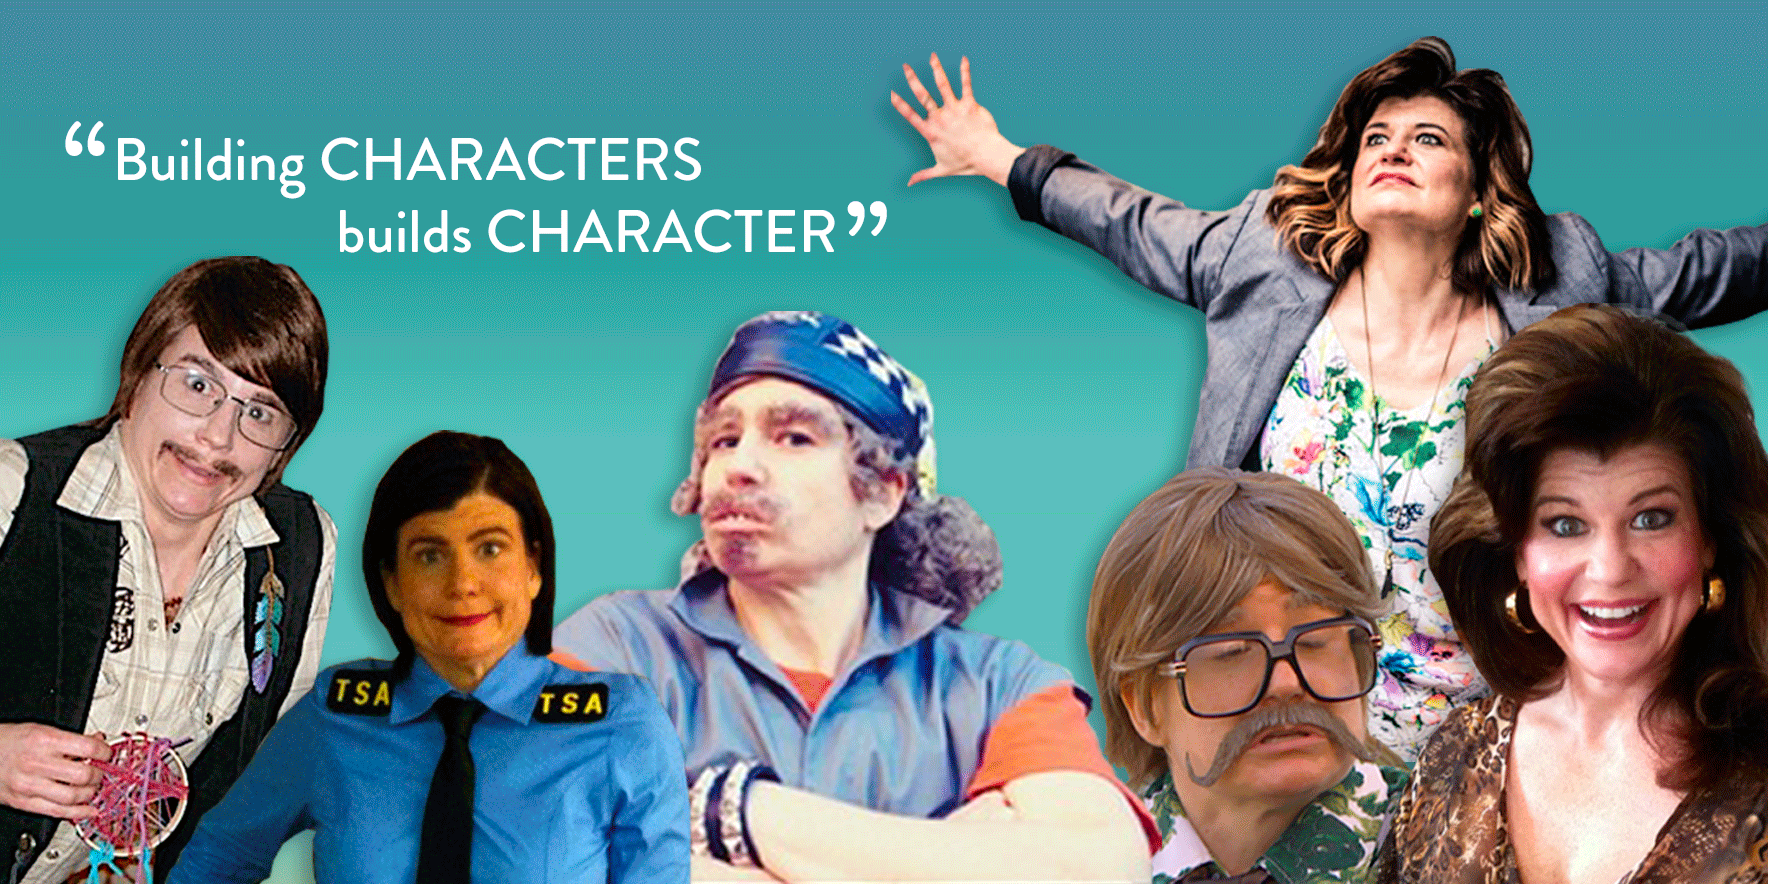 Building characters builds character.